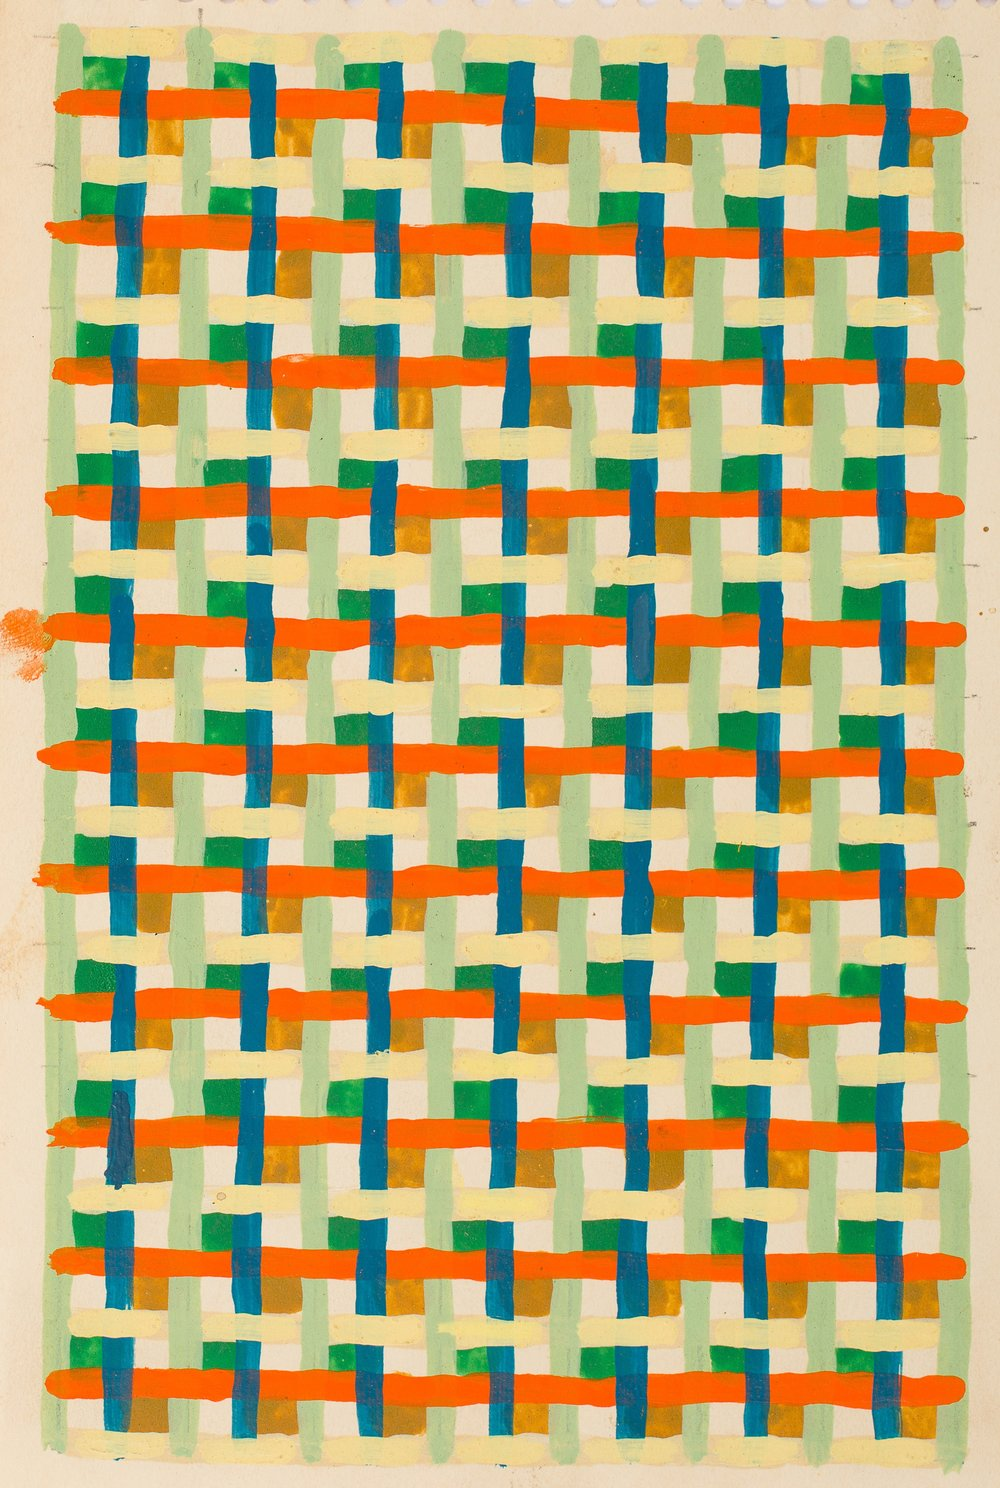 Peter Young,  Linear Weave Study,  1979, Acrylic on notebook paper, 8 3/4 x 5 3/4 inches (22.2 x 14.6 cm)